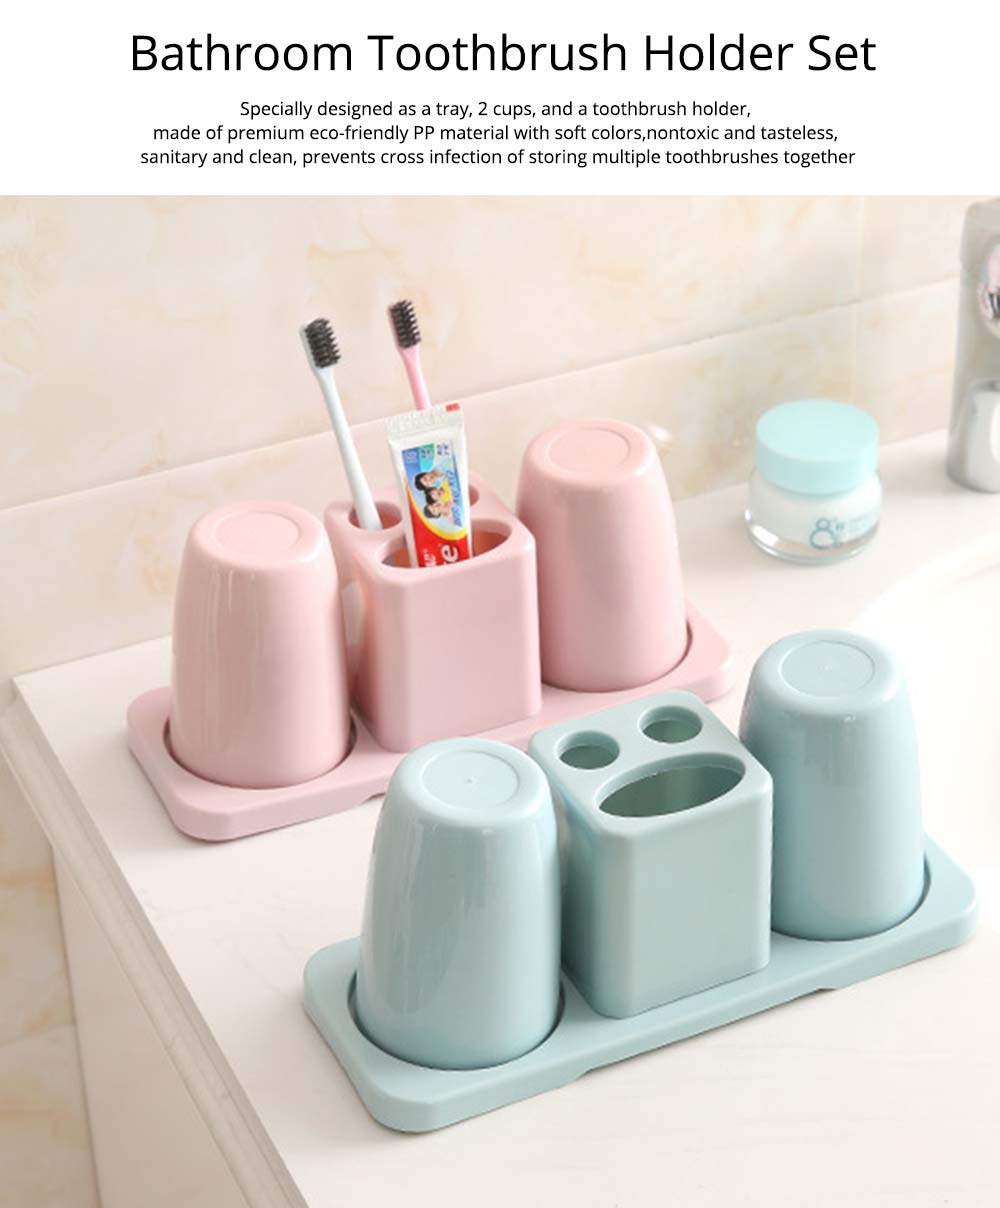 . Toothbrush Holder with Cups  Bathroom Toothbrush Cups Organizer Set with  Draining Rack for Couples  Family  Roommates